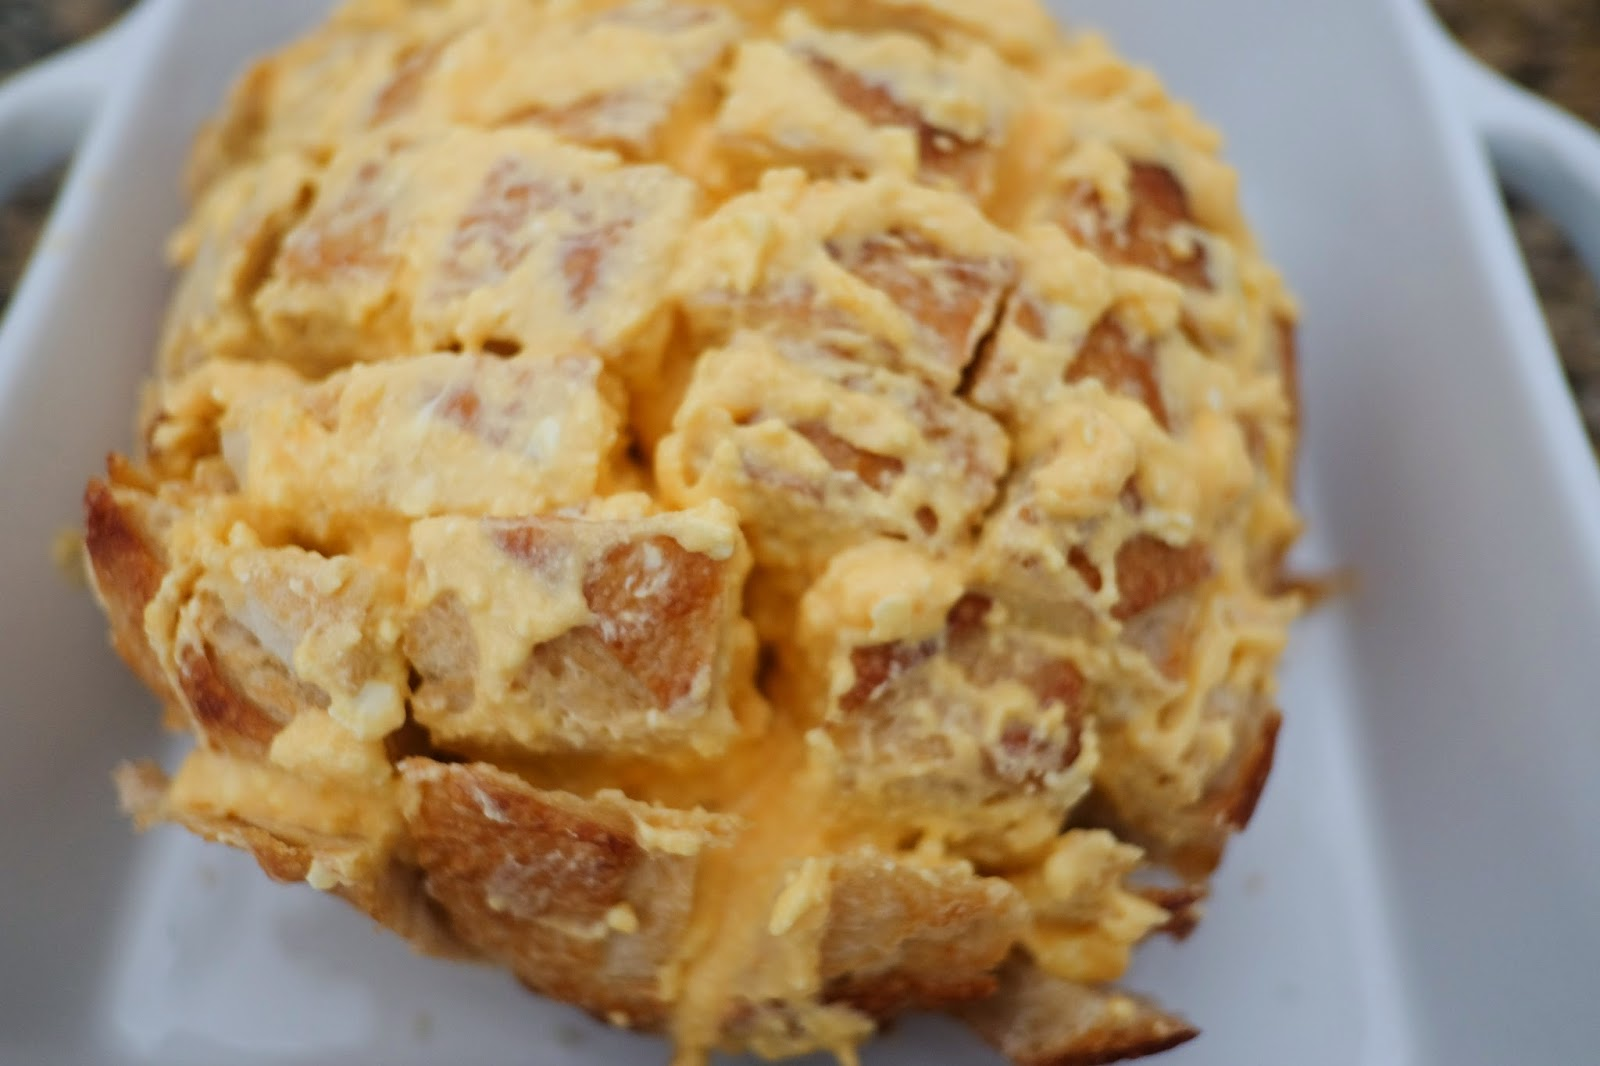 Best Pull Apart Cheesy Bread Recipe - the best pull apart cheesy bread I have tried!  It's all in the Kraft Old English cheese spread!  Yum!